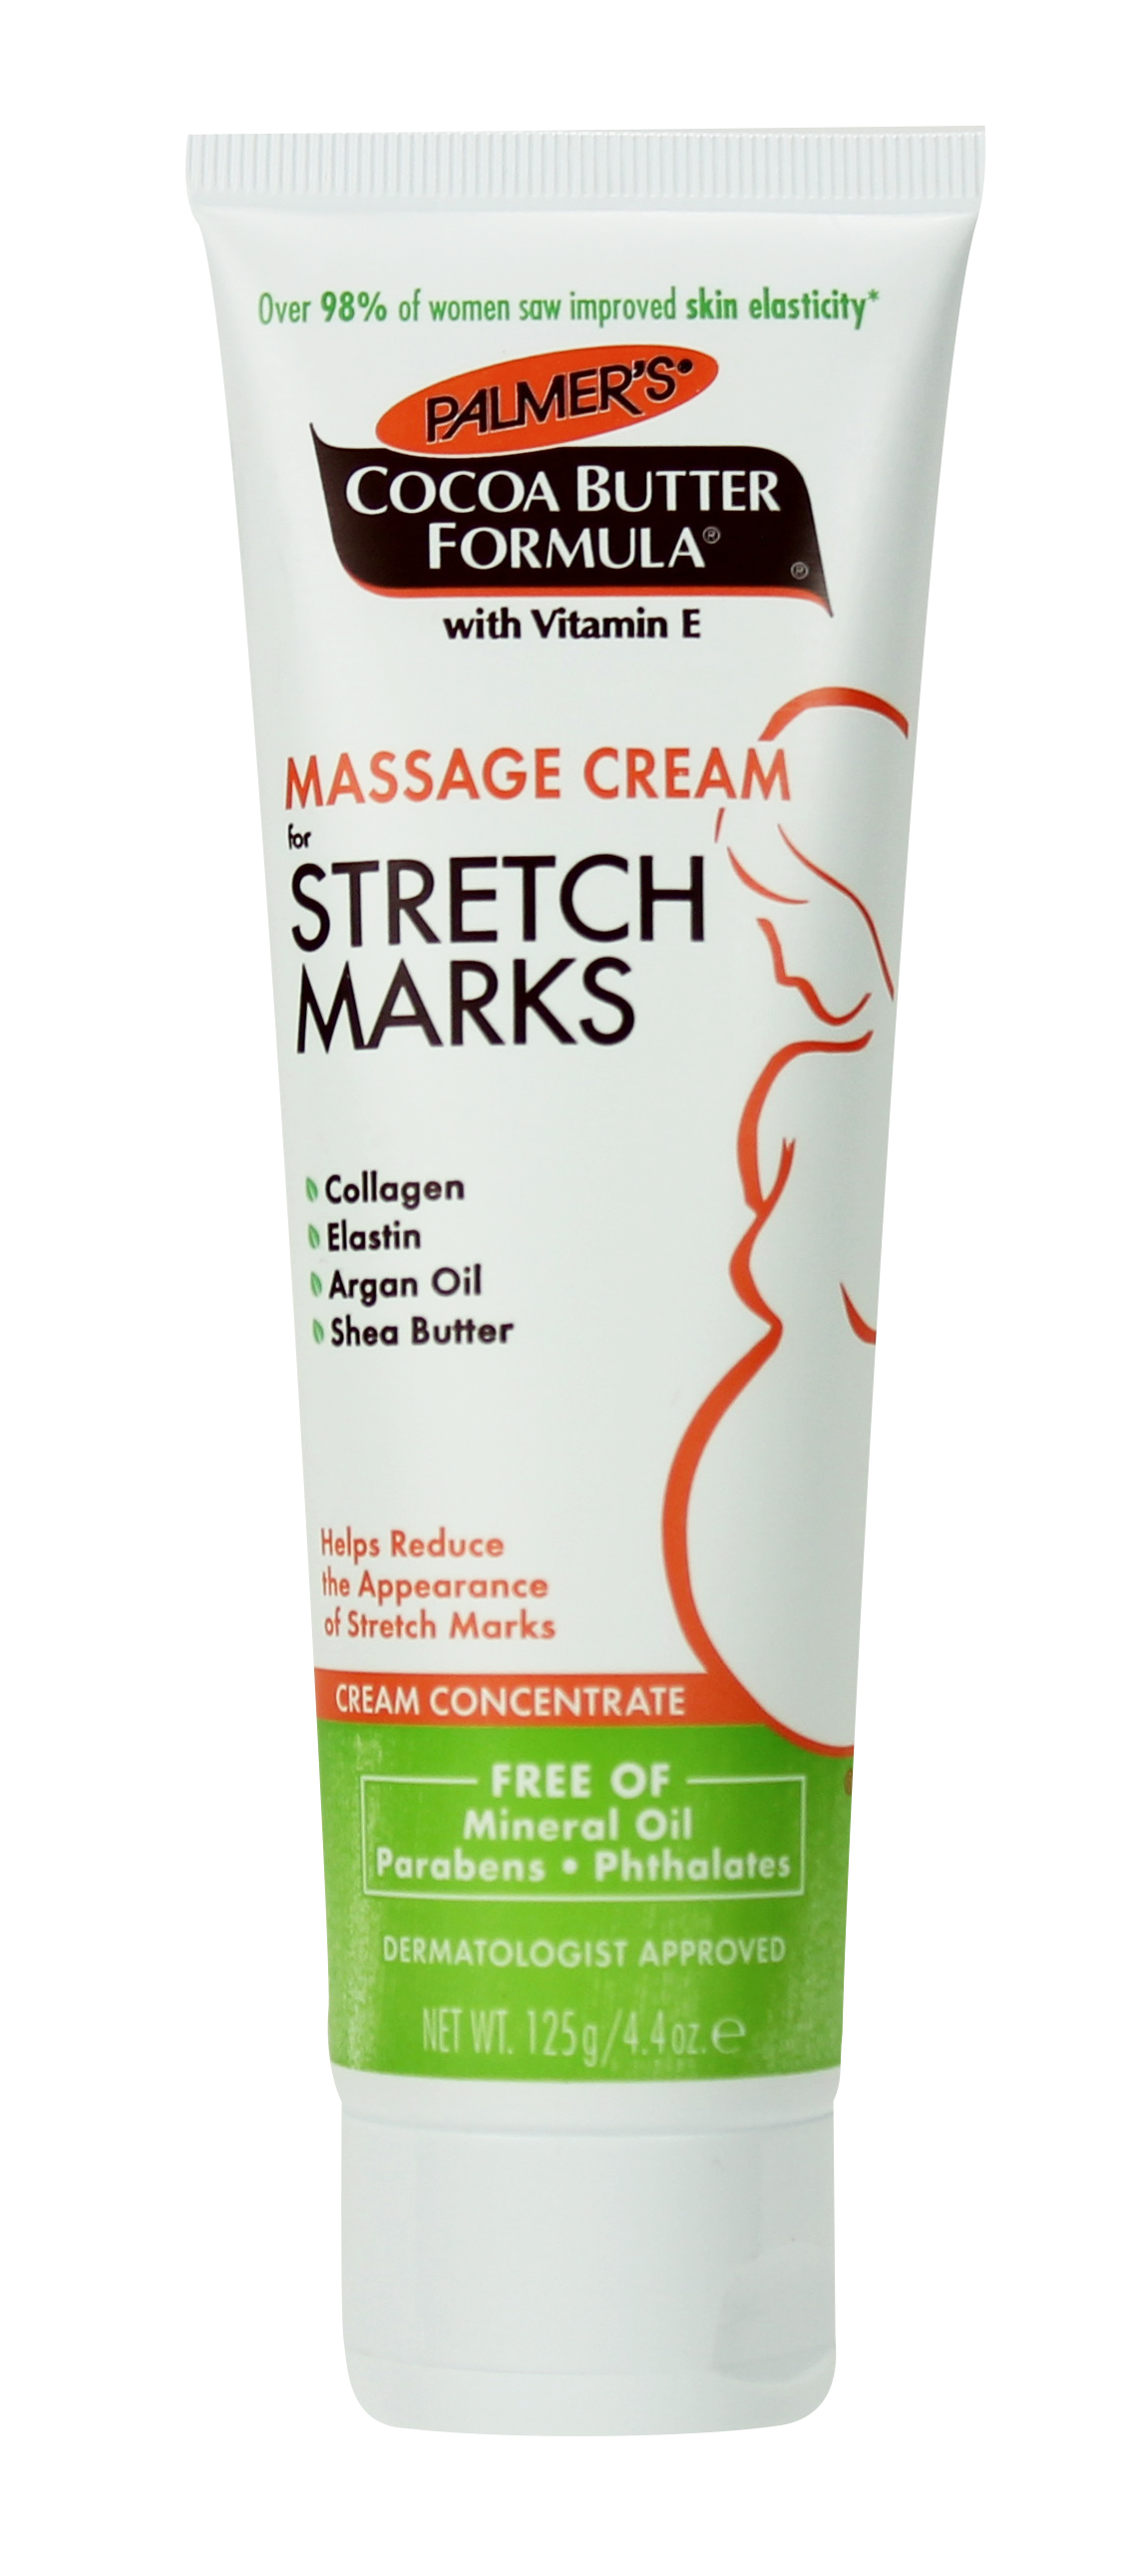 Massage lotions and creams have thought